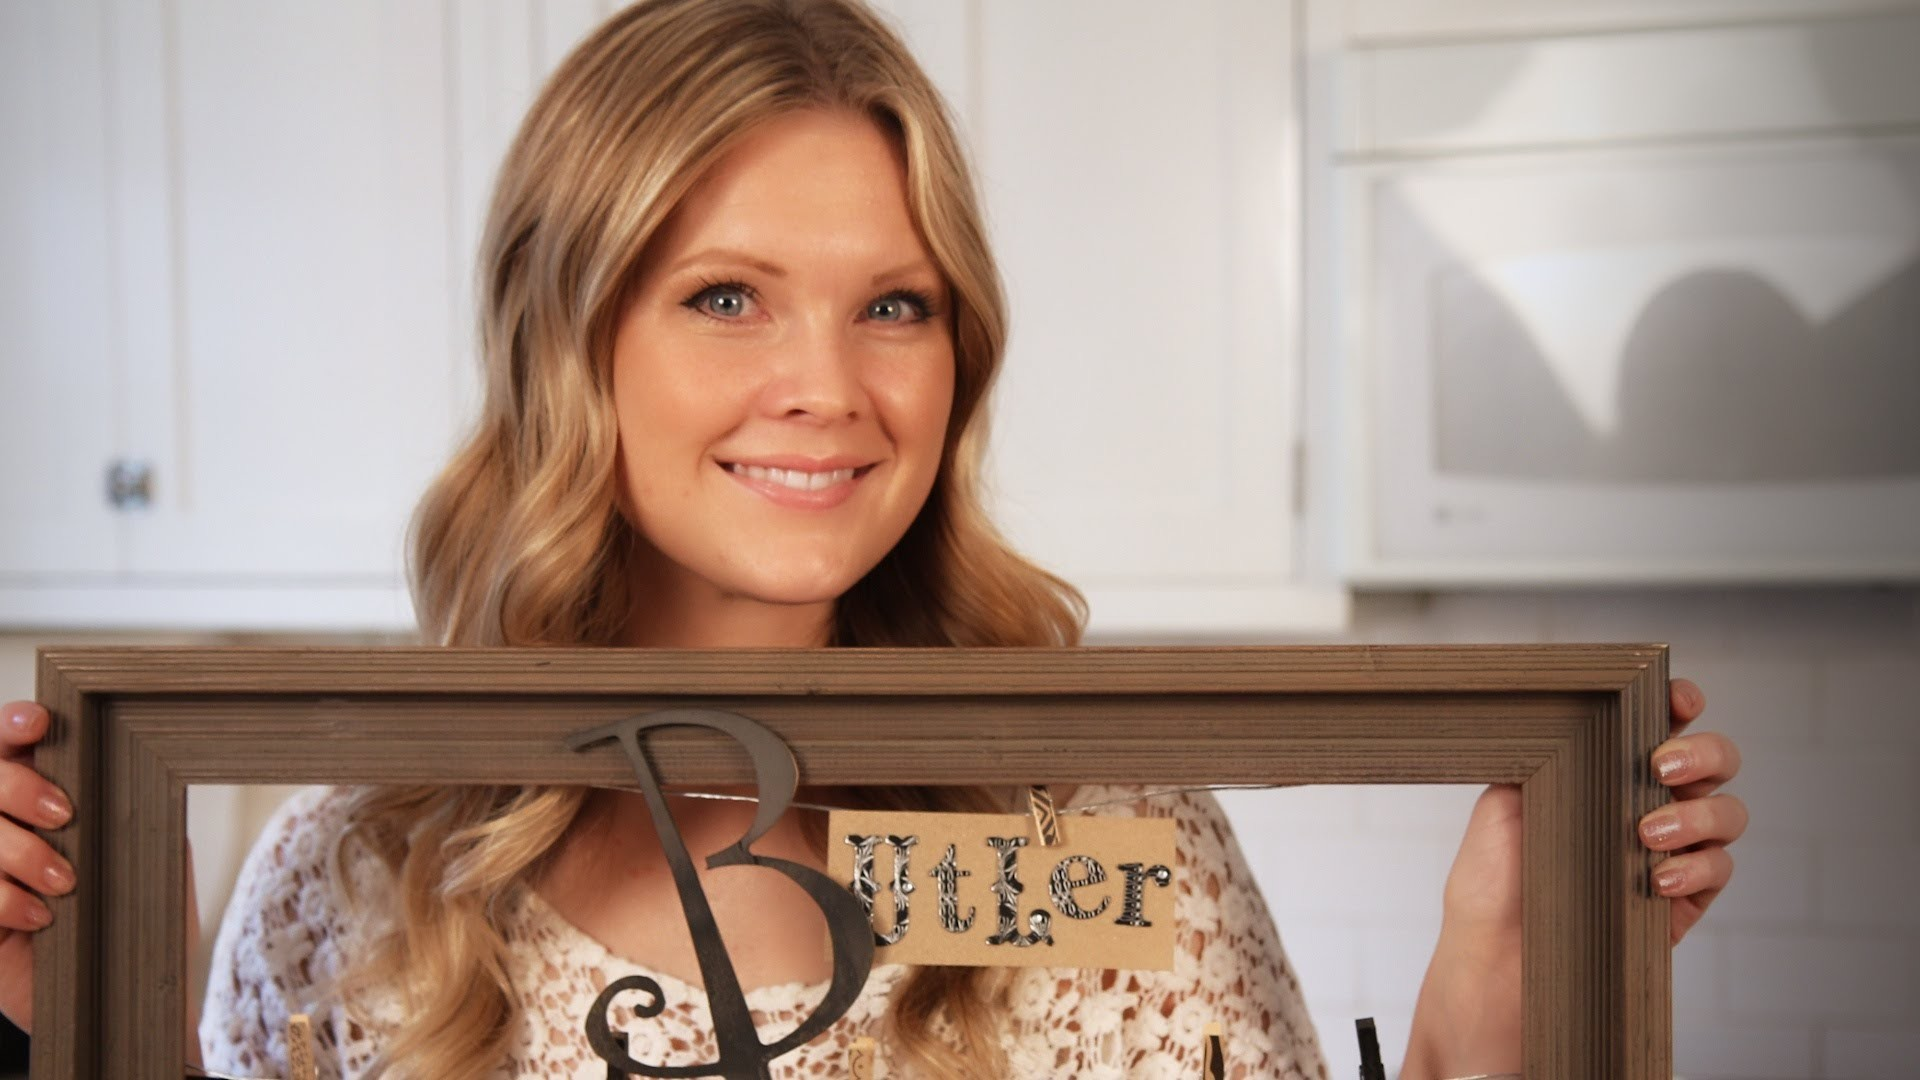 Personalize Picture Frame